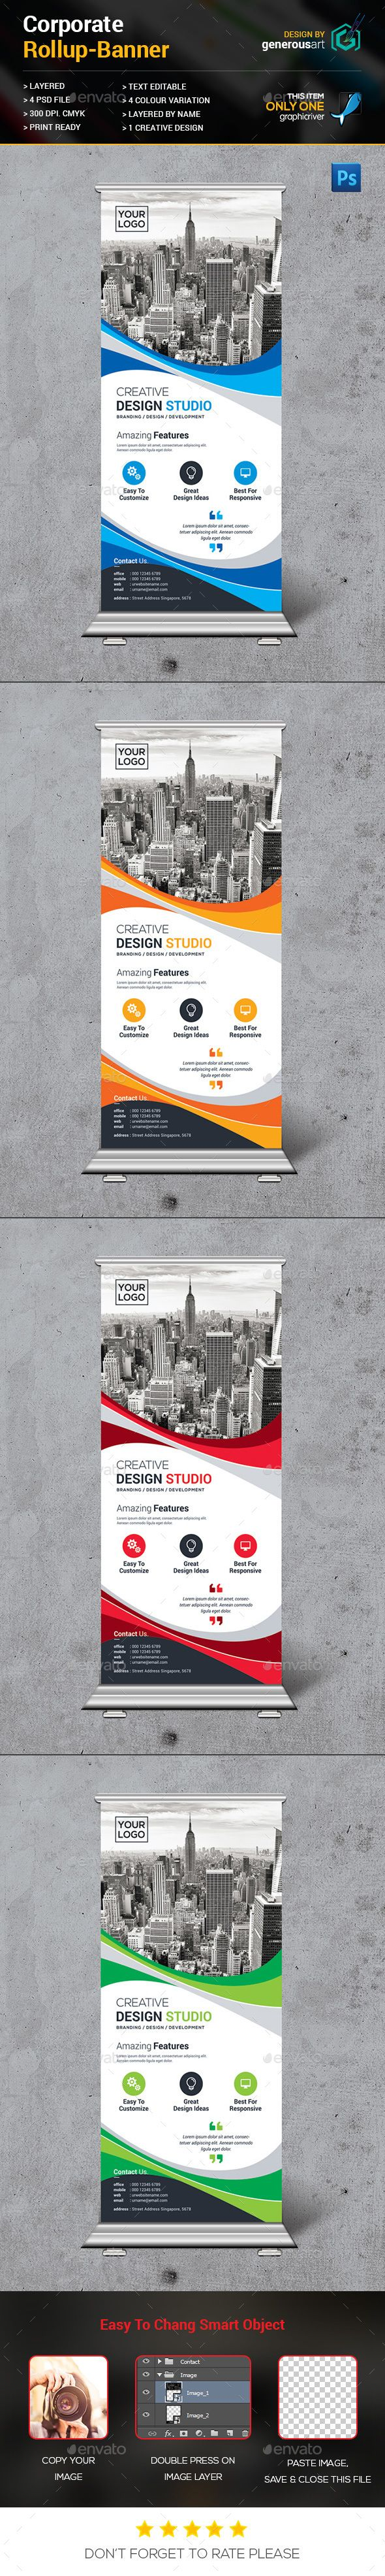 New Rollup Banner Template PSD #design Download: http://graphicriver.net/item/new-rollup-banner/14123522?ref=ksioks